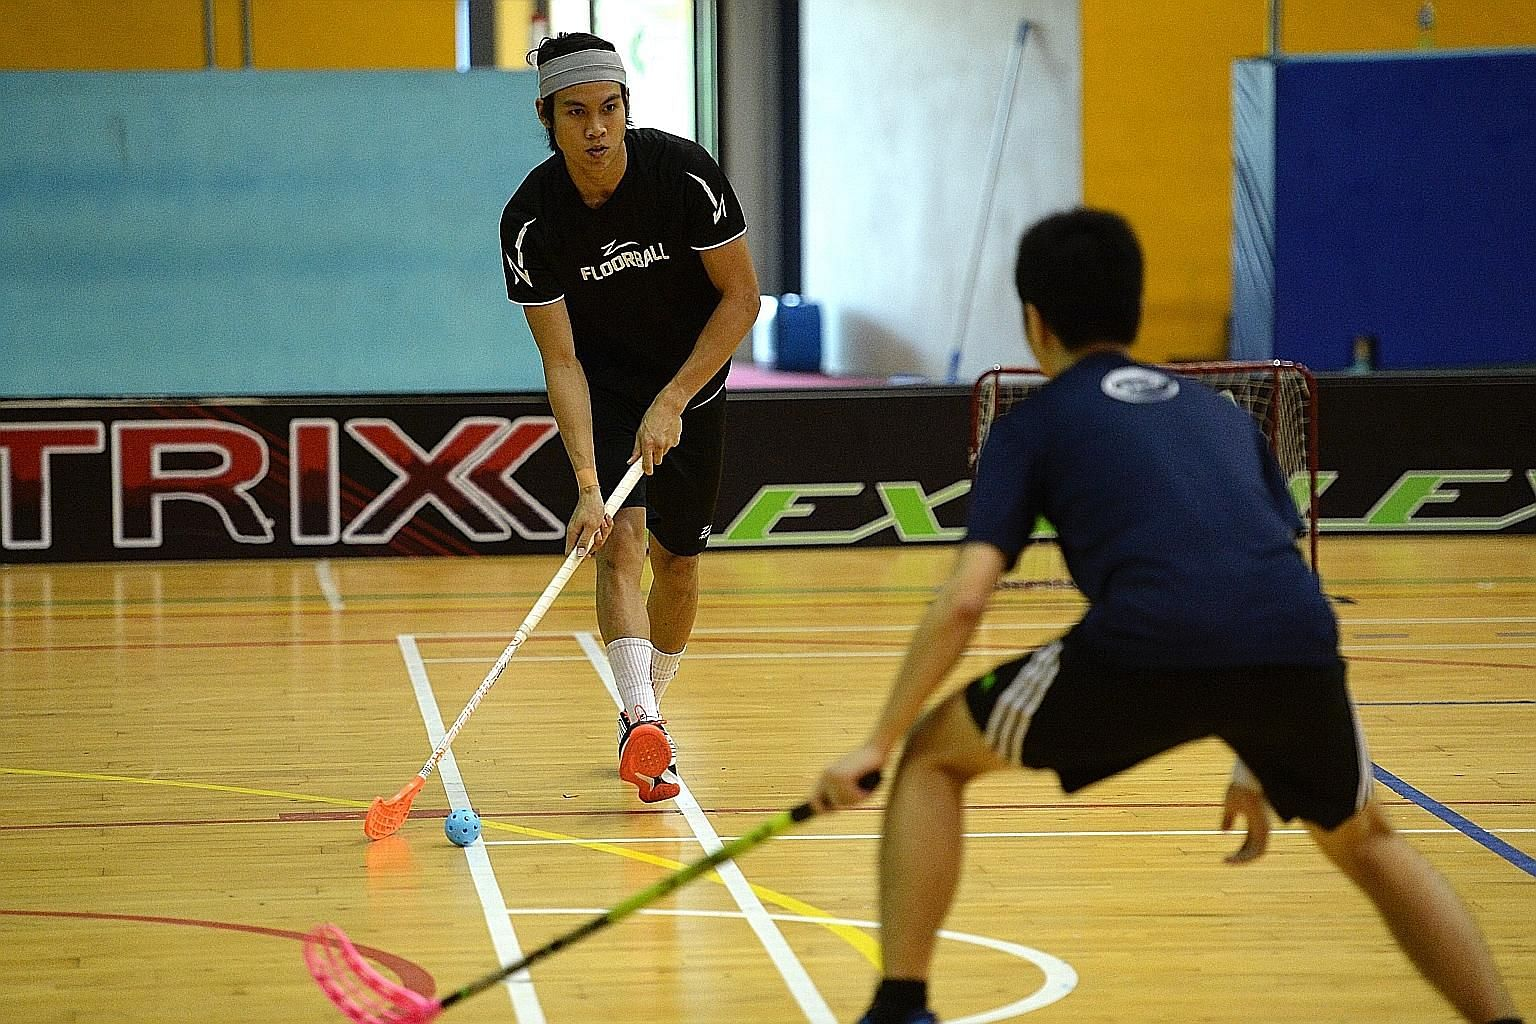 Singapore floorball player Akmal Shaharudin (left) playing in the ActiveSG floorball 3v3 event. The fraternity is hopeful the sport will grow with its incorporation into the fold of ActiveSG academies.